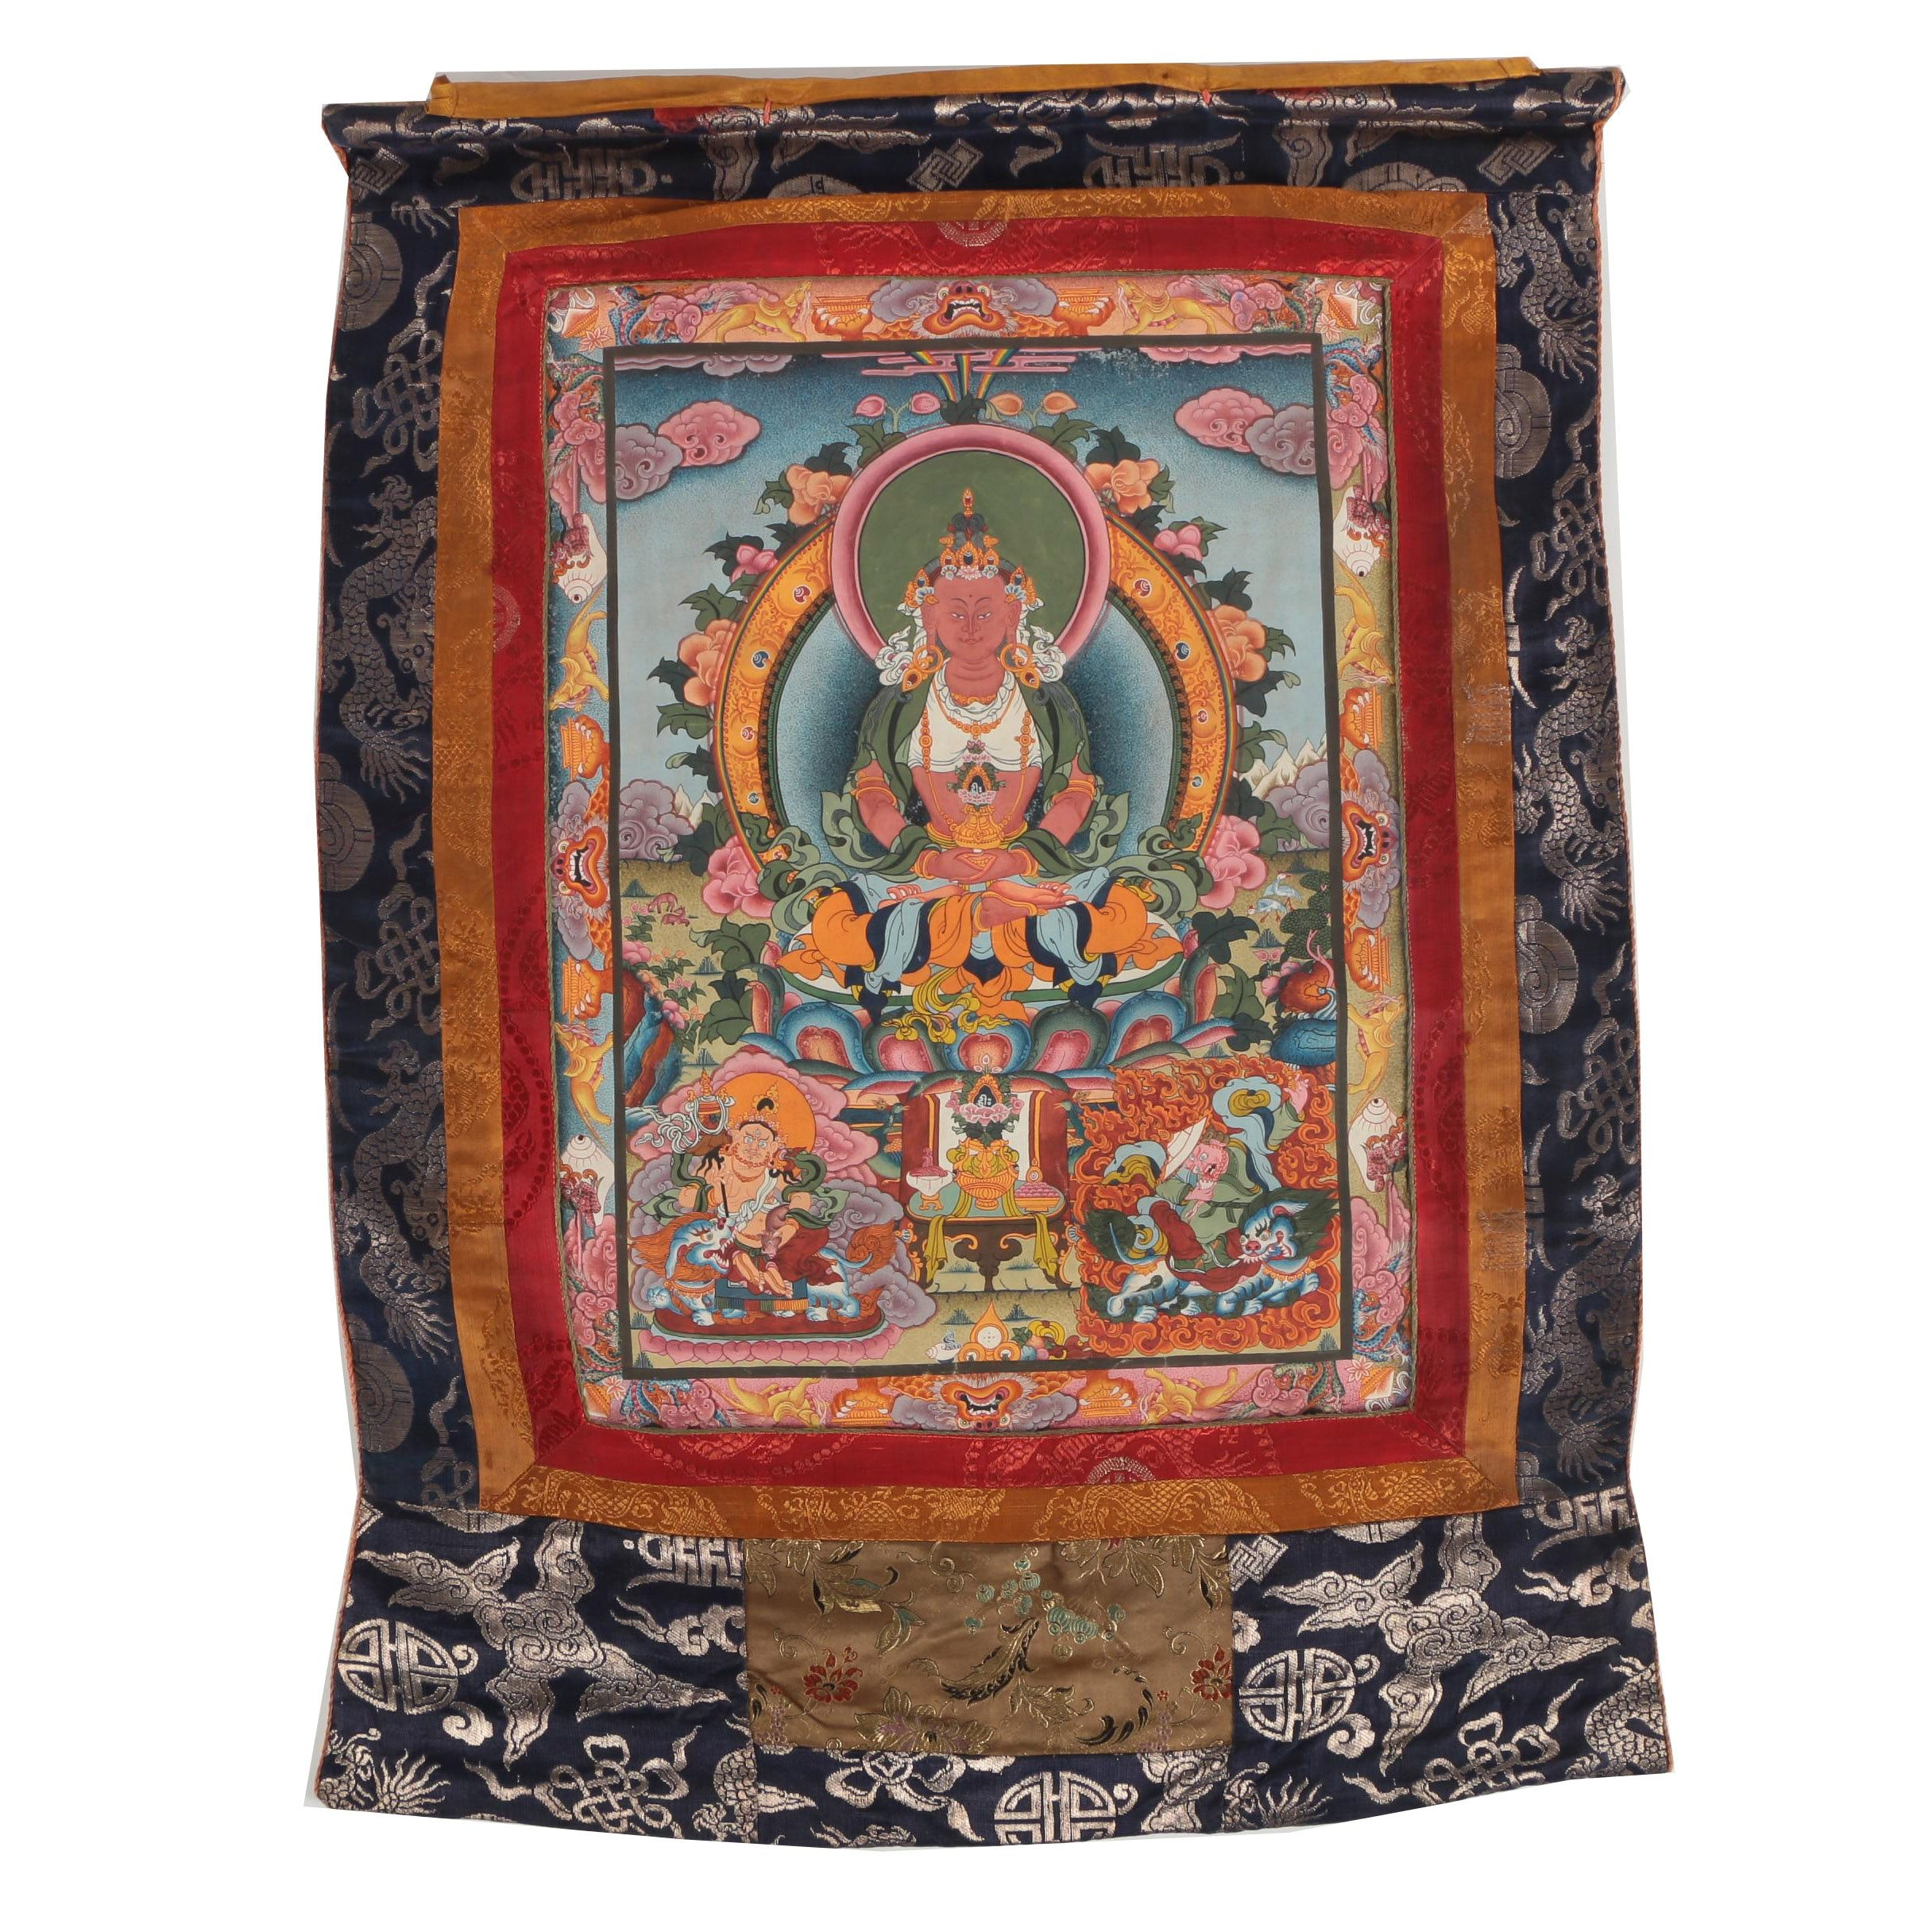 Hand-Painted Tibetan Buddhist Thangka of Amitabha